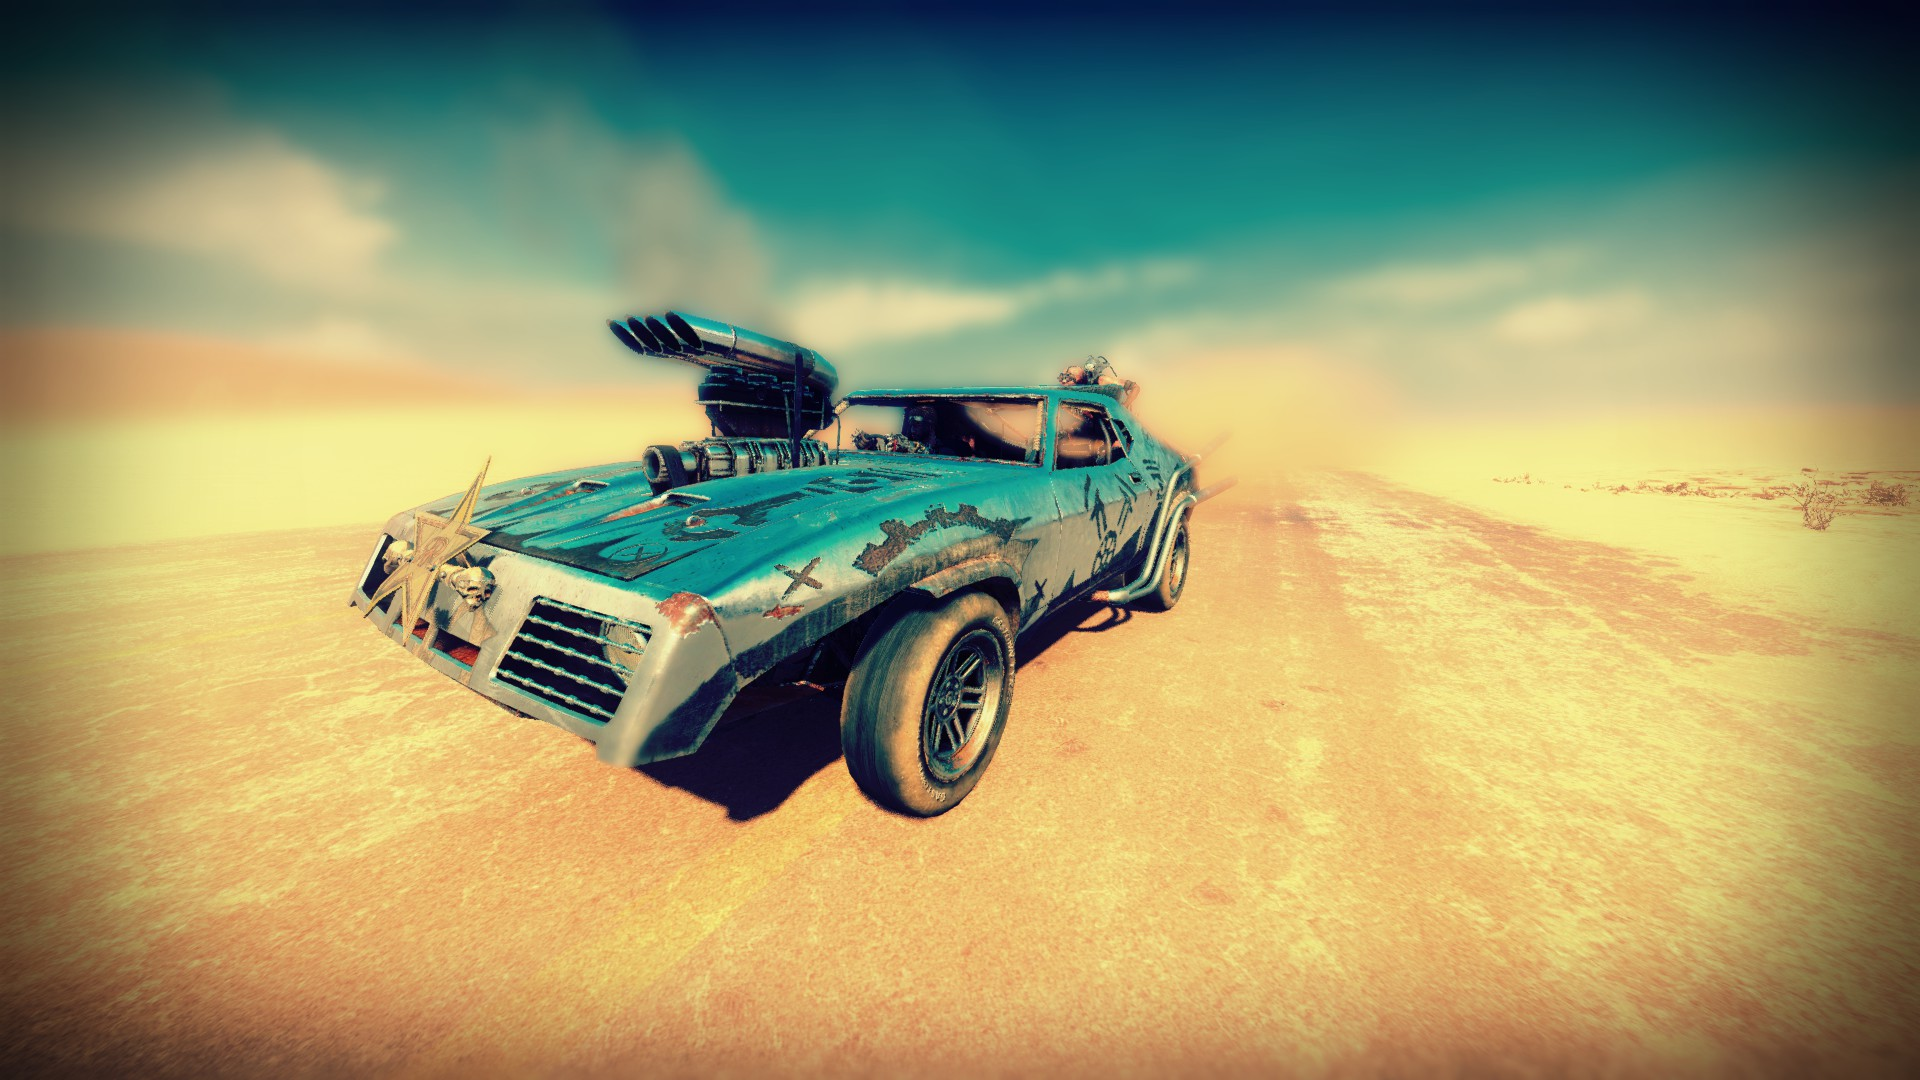 [CONTEST] Vehicular Screenshot Contest - August 2016 3E80B8A53131504F784B3B76E1229DADBC4FA976